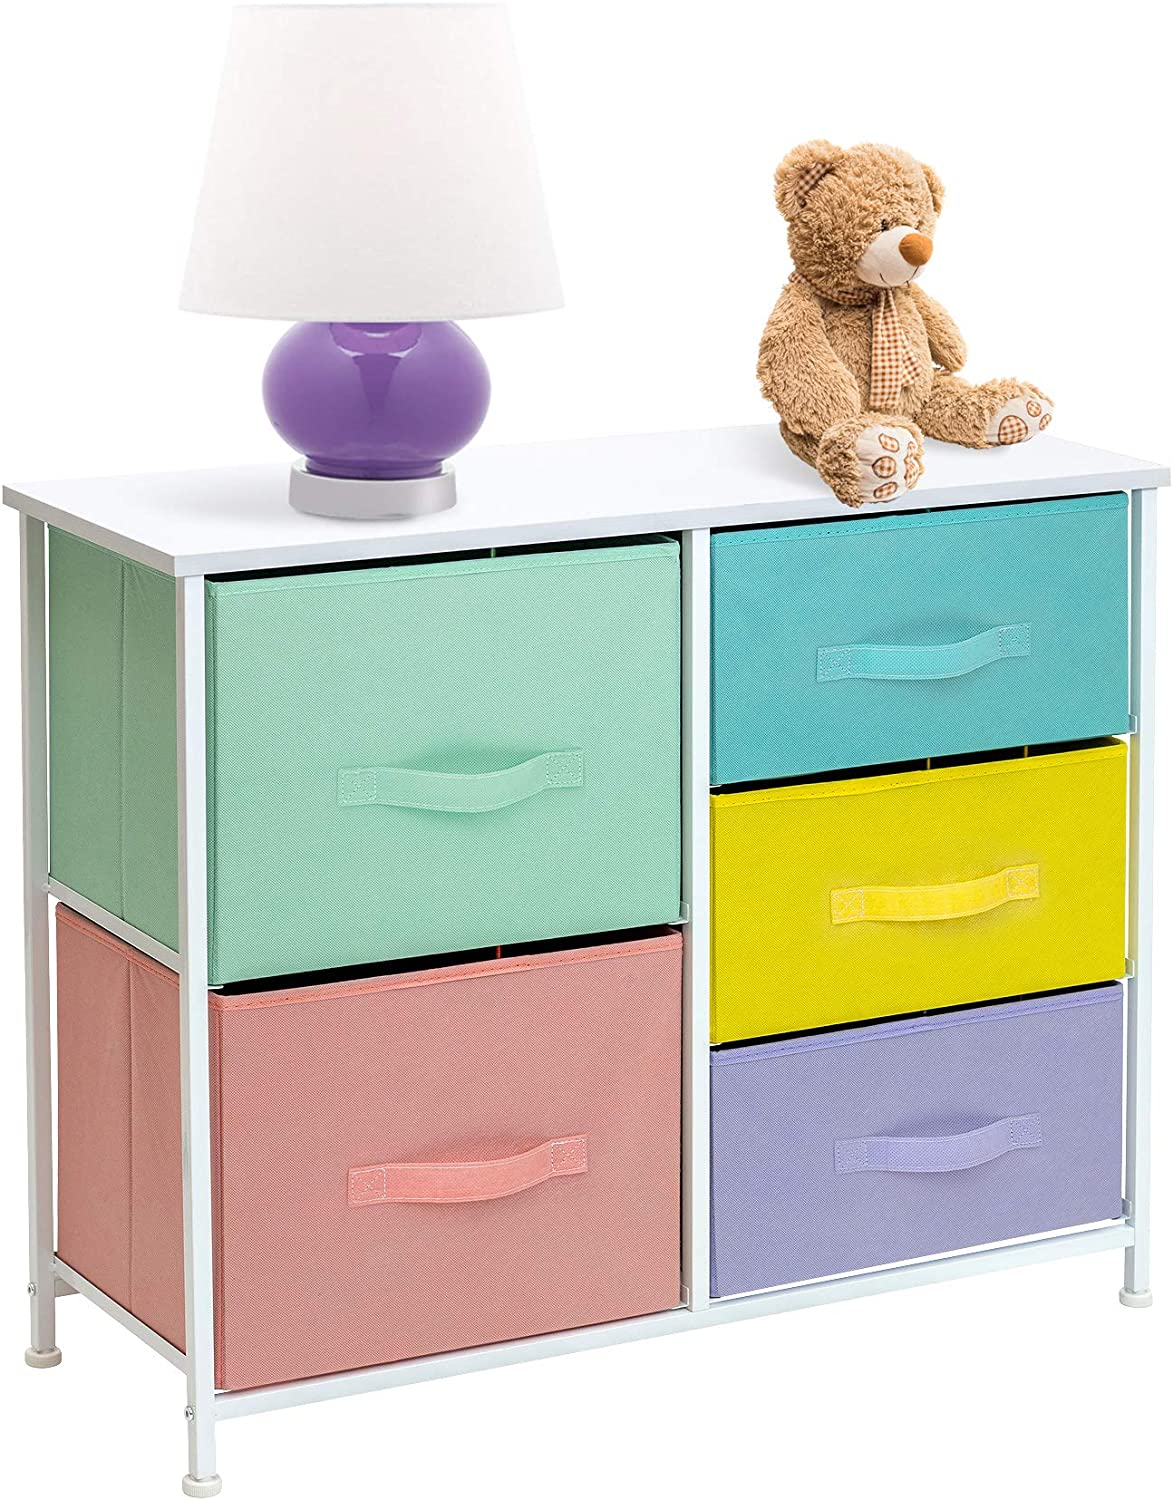 Sorbus Nightstand with Drawers - Bedside Furniture & Night Stand End Table Dresser for Home, Bedroom Accessories, Office, College Dorm, Steel Frame, Wood Top (5-Drawer, Pastel/White)